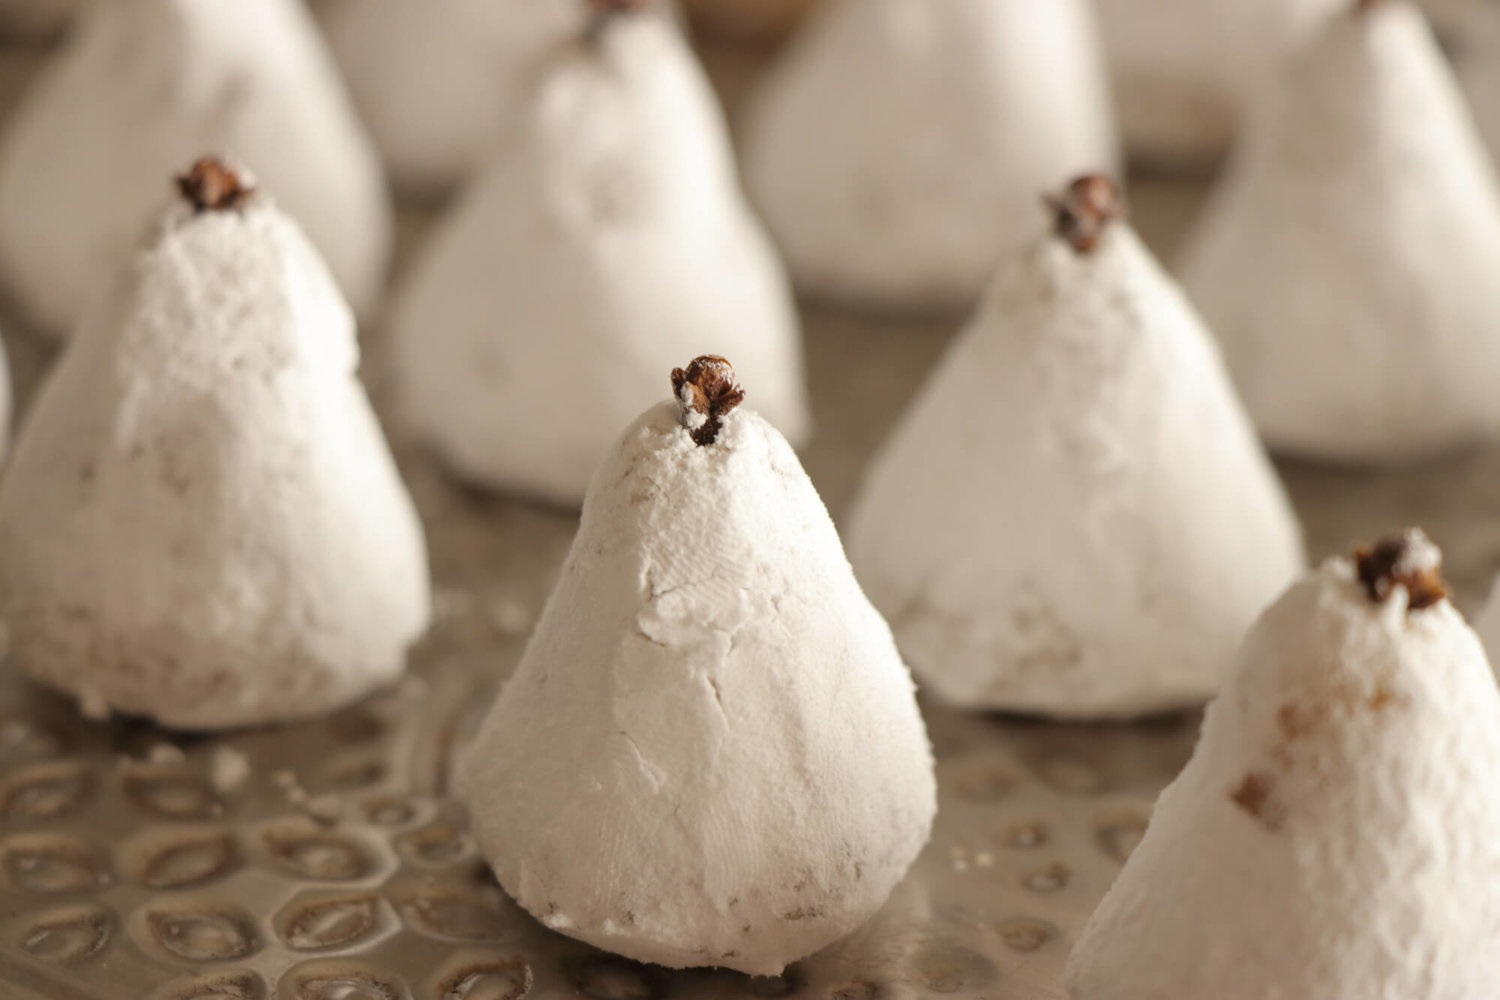 Amygdalota  come in a great variety, especially in the Greek islands. Here, pears covered in sugar and flavored with rose water are a delicacy usually offered in weddings in the island of Crete. Photo source: paxxi.gr